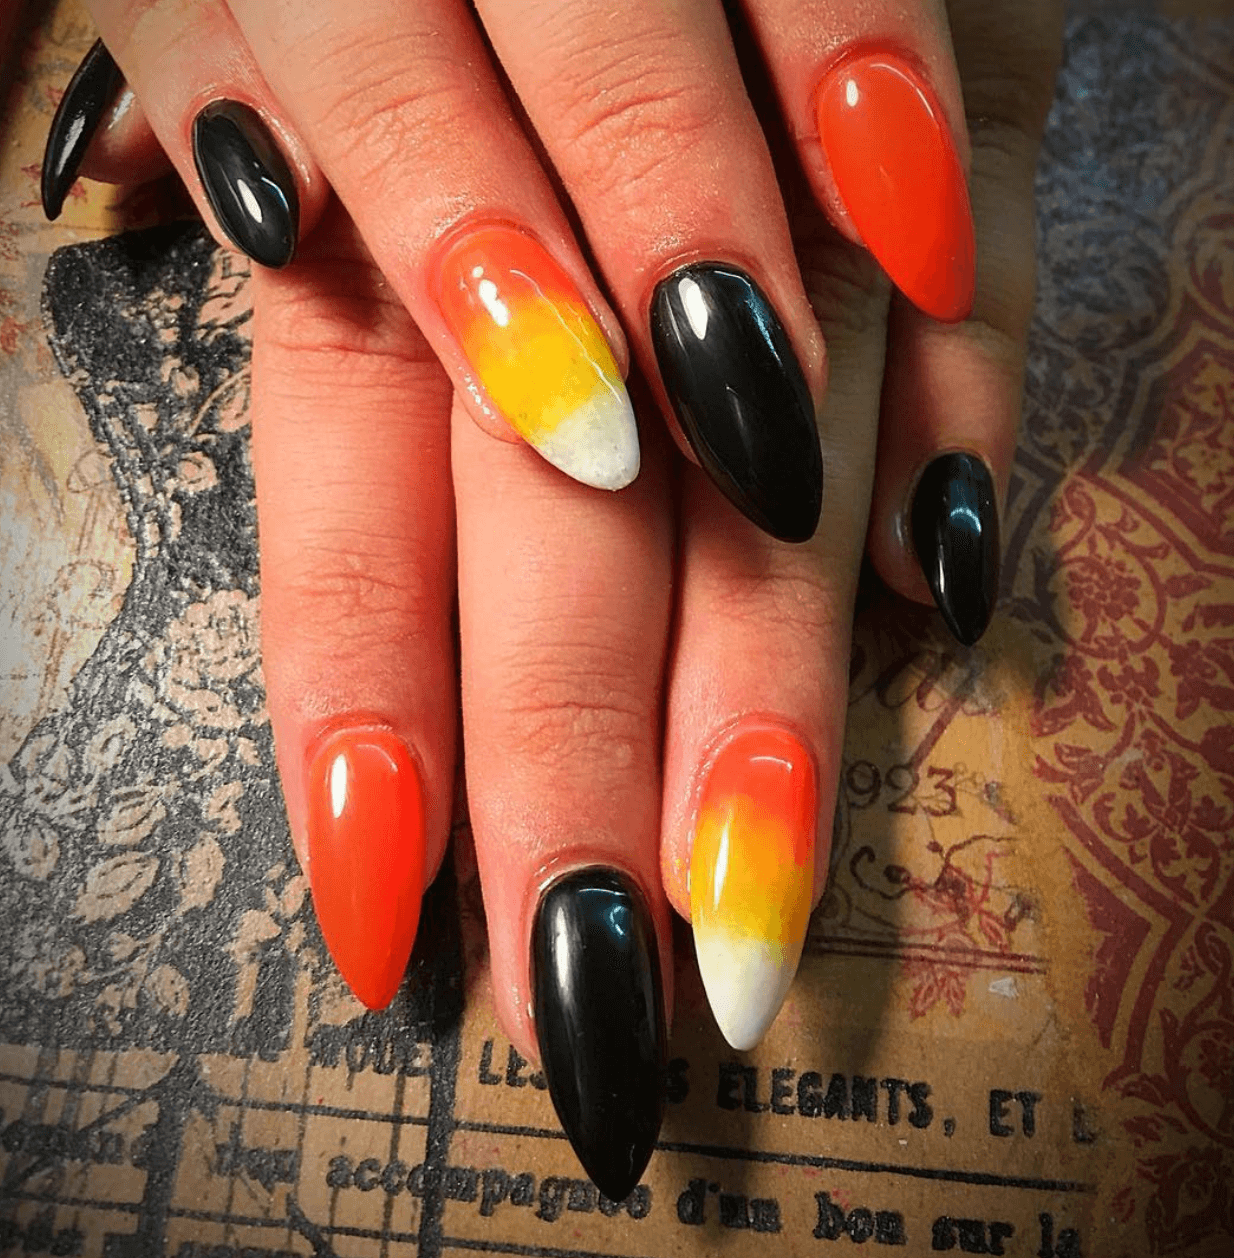 12 Spooky, Creepy And Scary Halloween Nail Designs